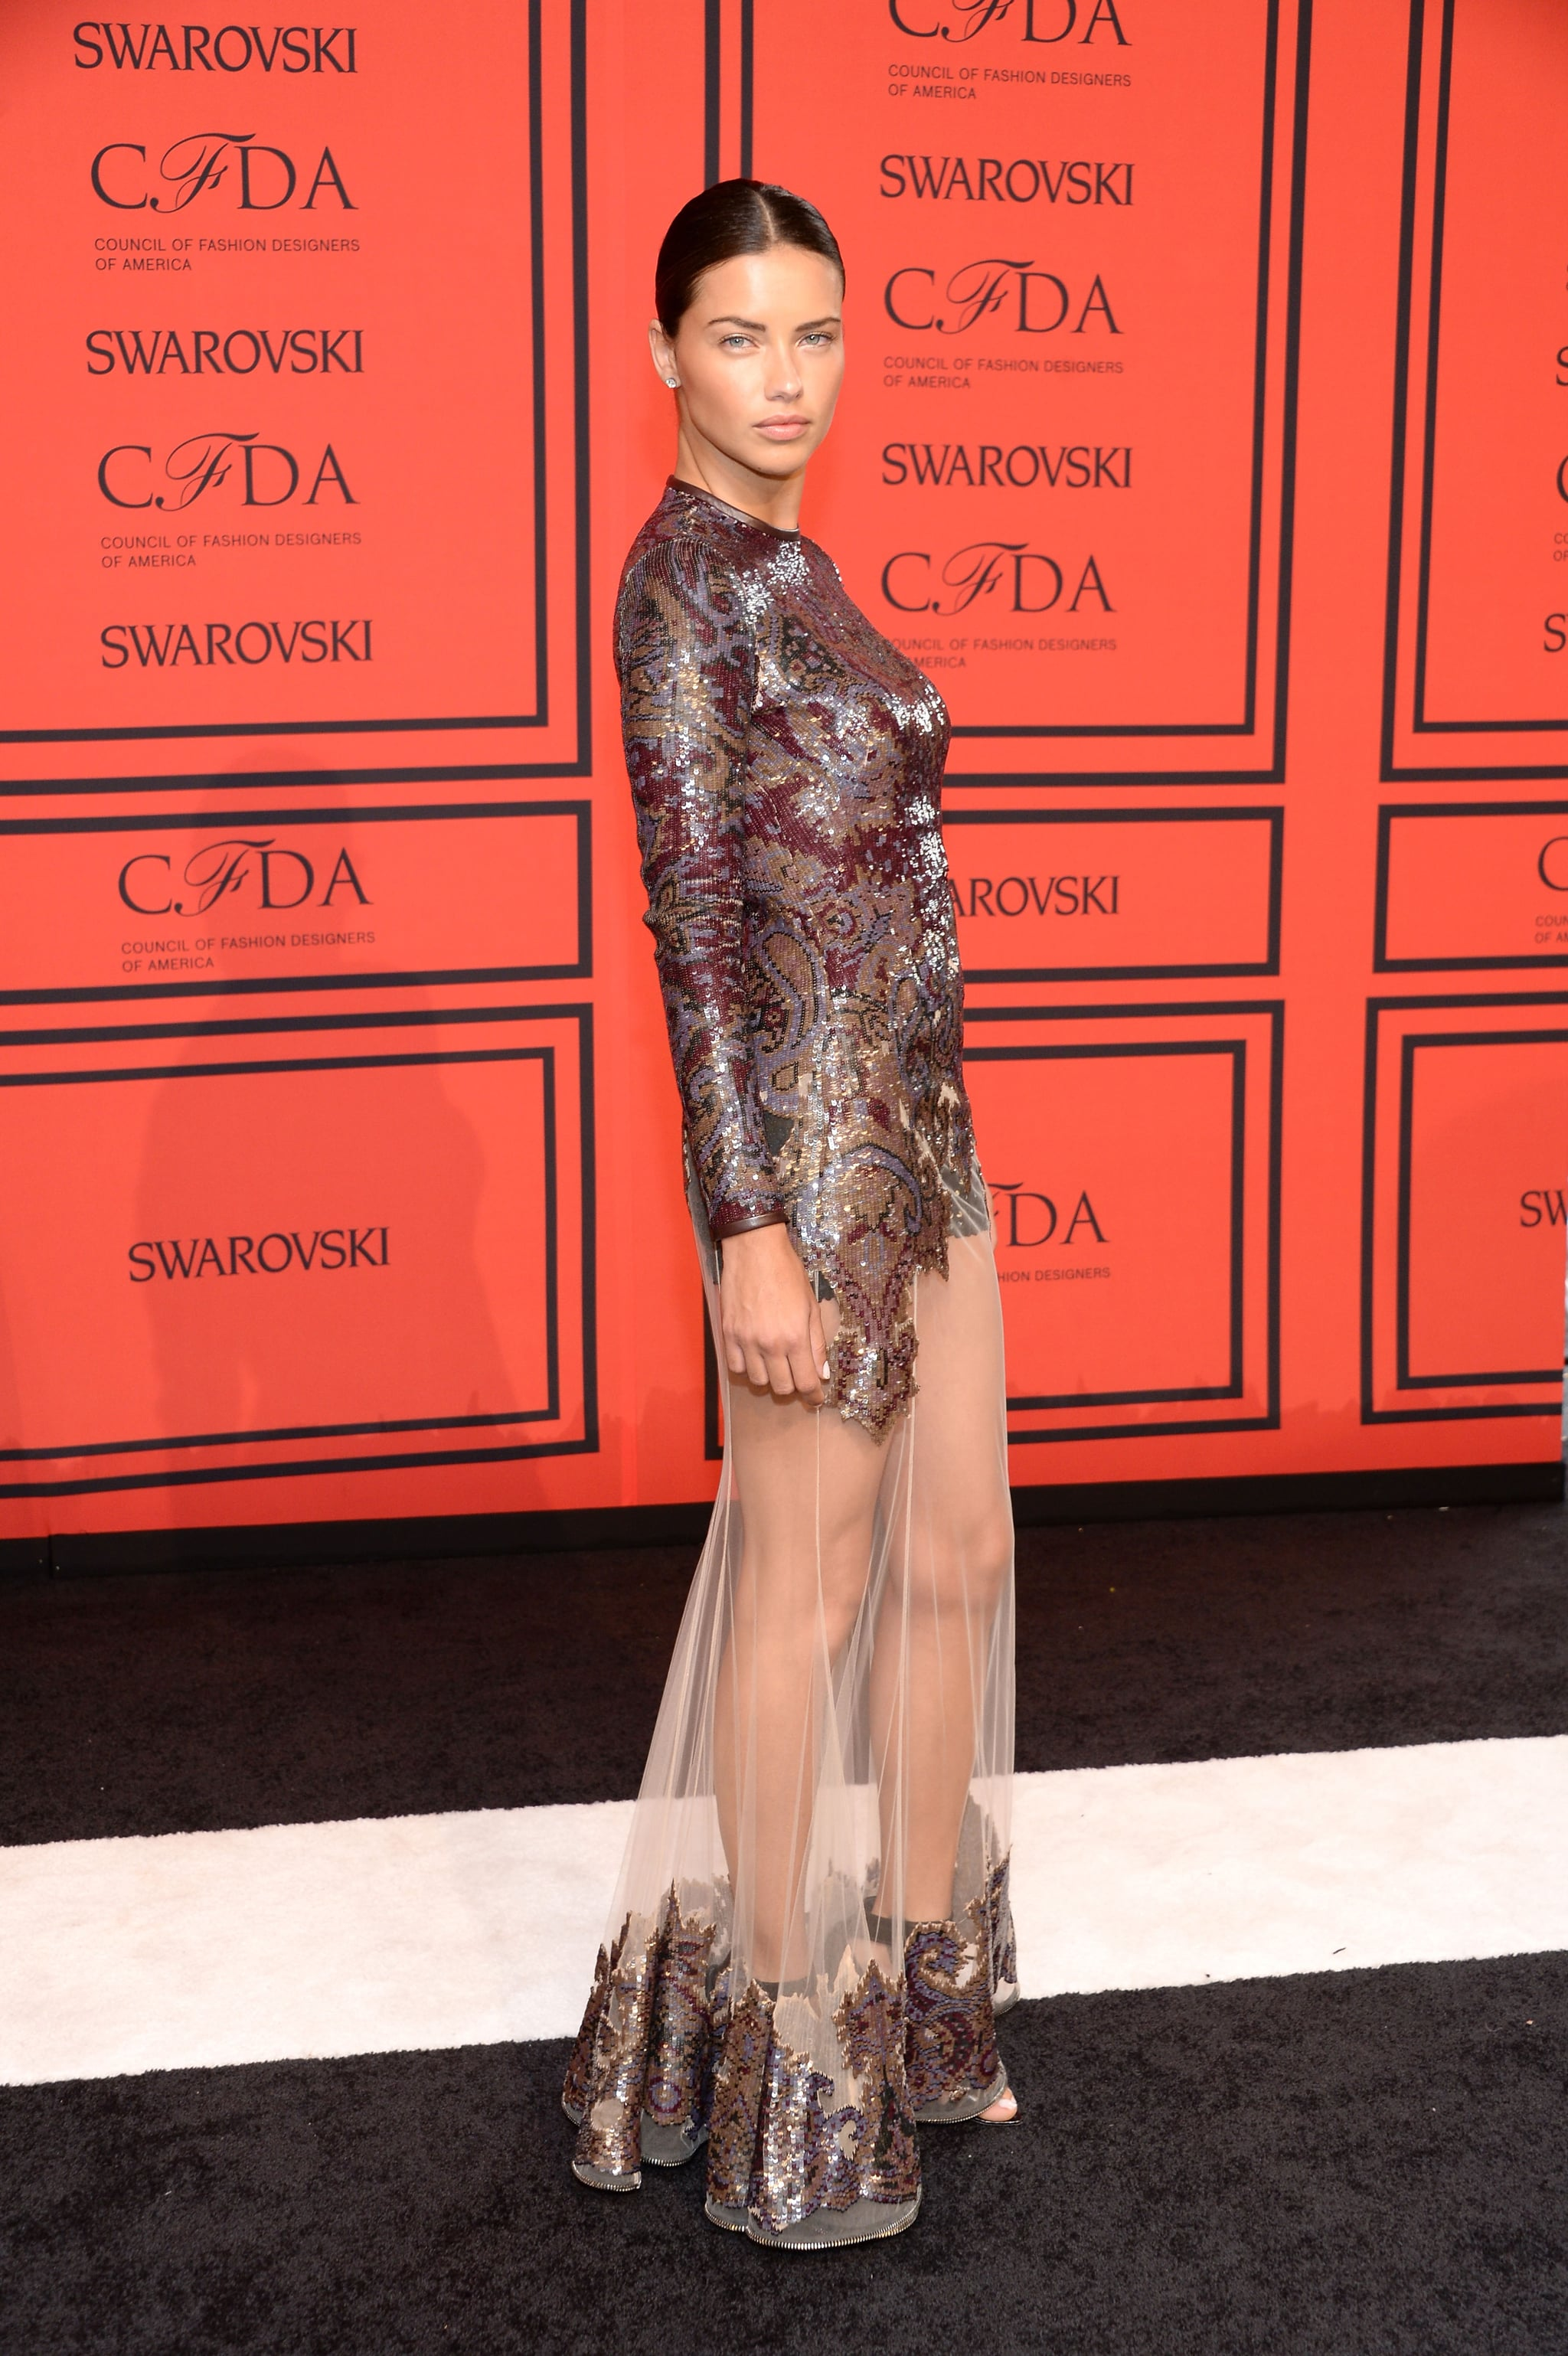 Adriana Lima Worked A Similar Givenchy Gown At The 2013 Cfda Awards Top Model Fabulous Red Carpet Moments From Our Favorite Catwalkers Popsugar Fashion Photo 54